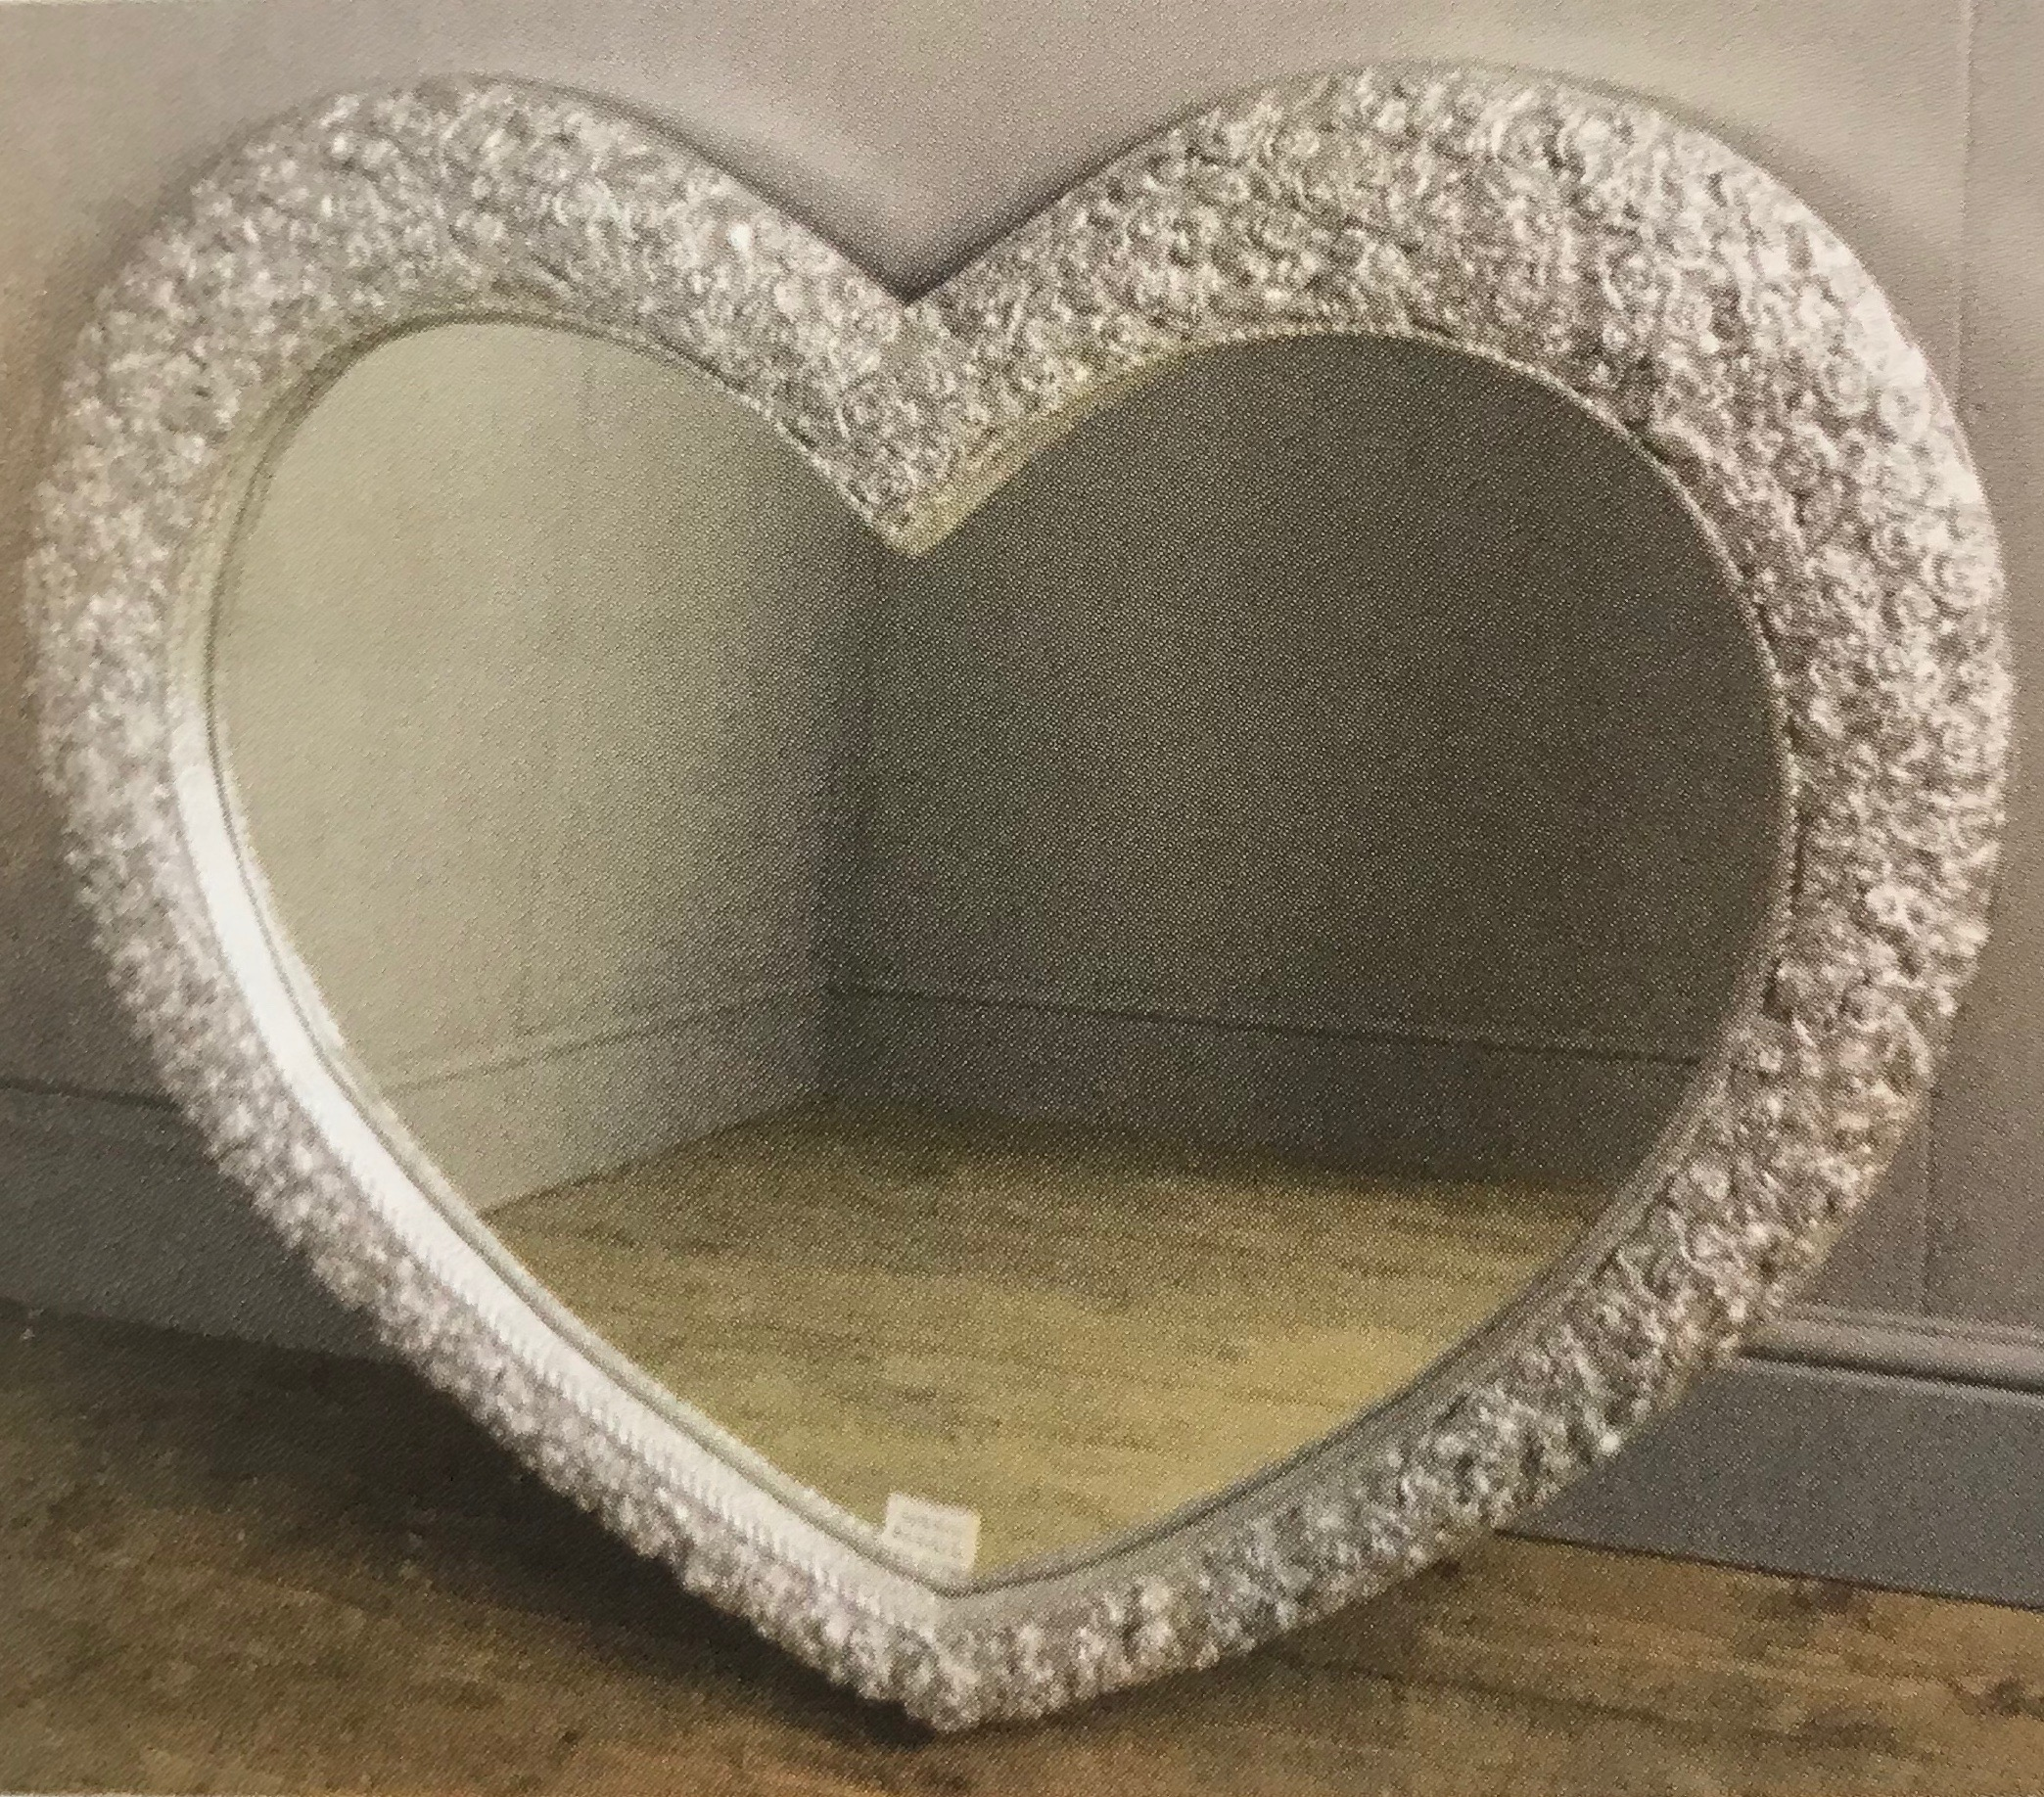 Heart Shaped Mirror Bed City Leicester